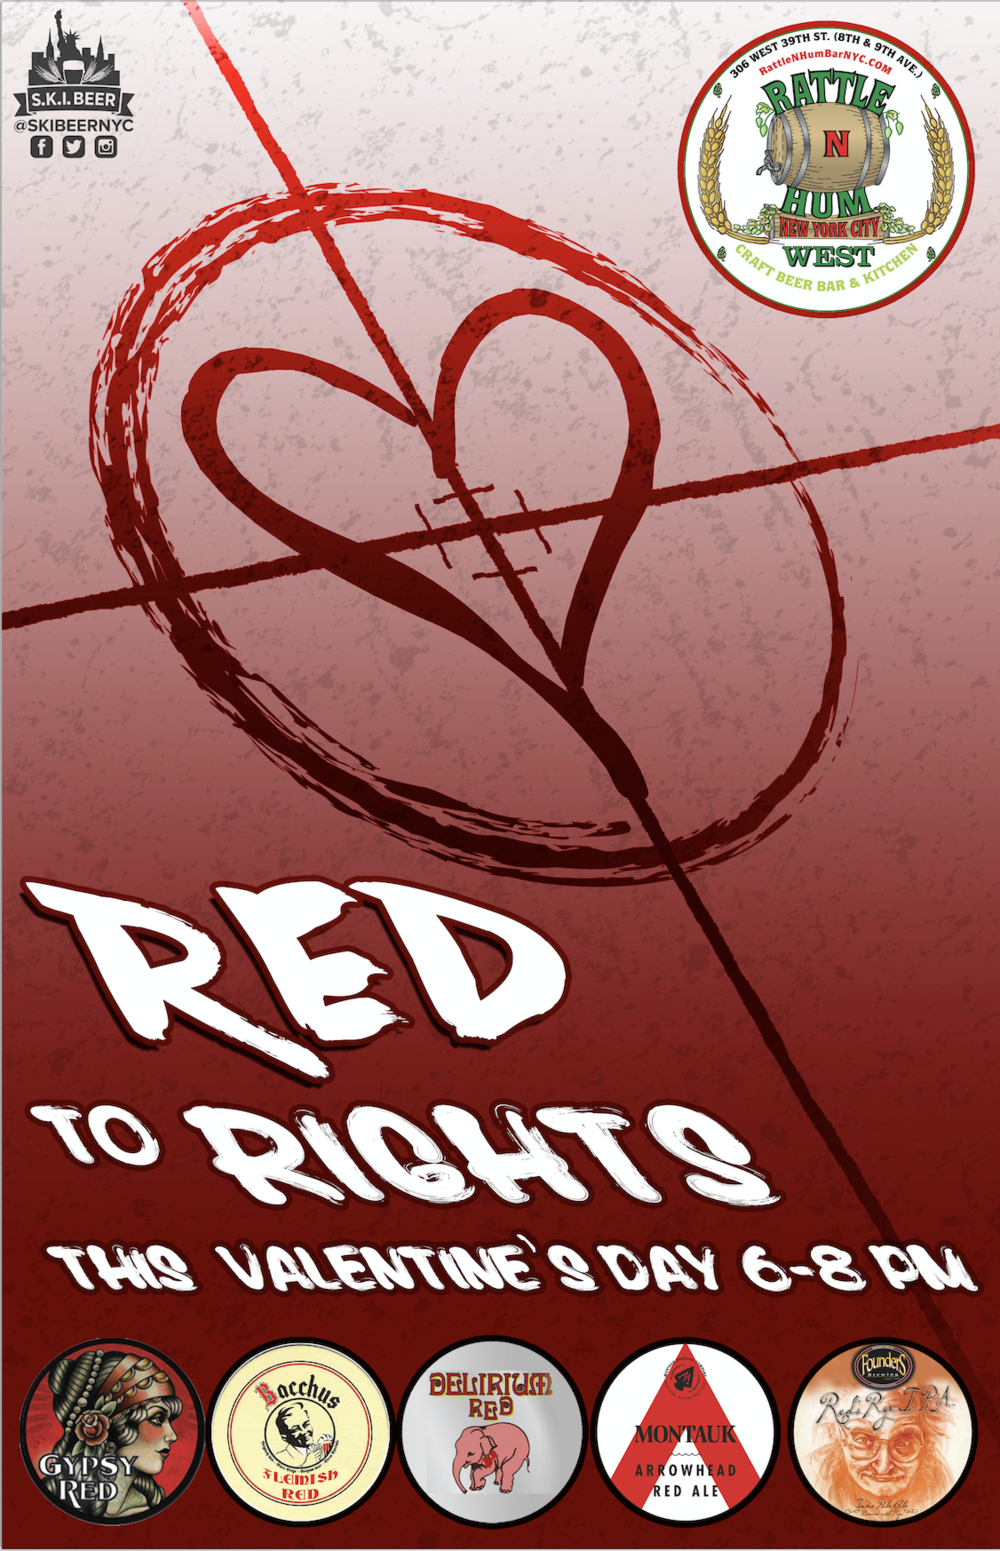 Valentine's Day: Red to Rights! - Rattle N Hum West — S K I